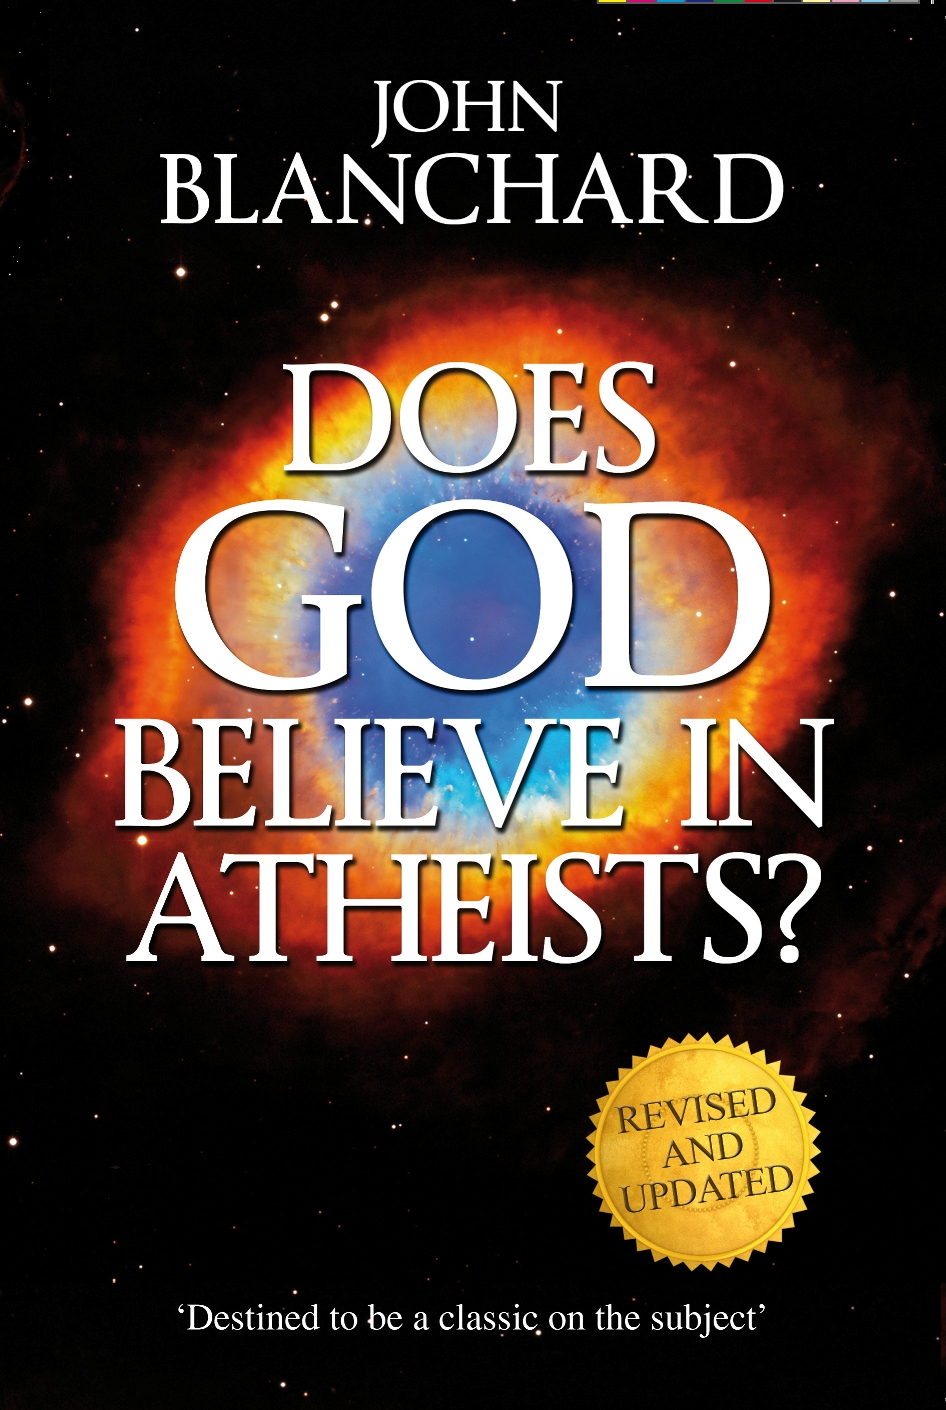 Does God Believe in Atheists?: How past atheist and agnostic thinking shapes people's thinking today